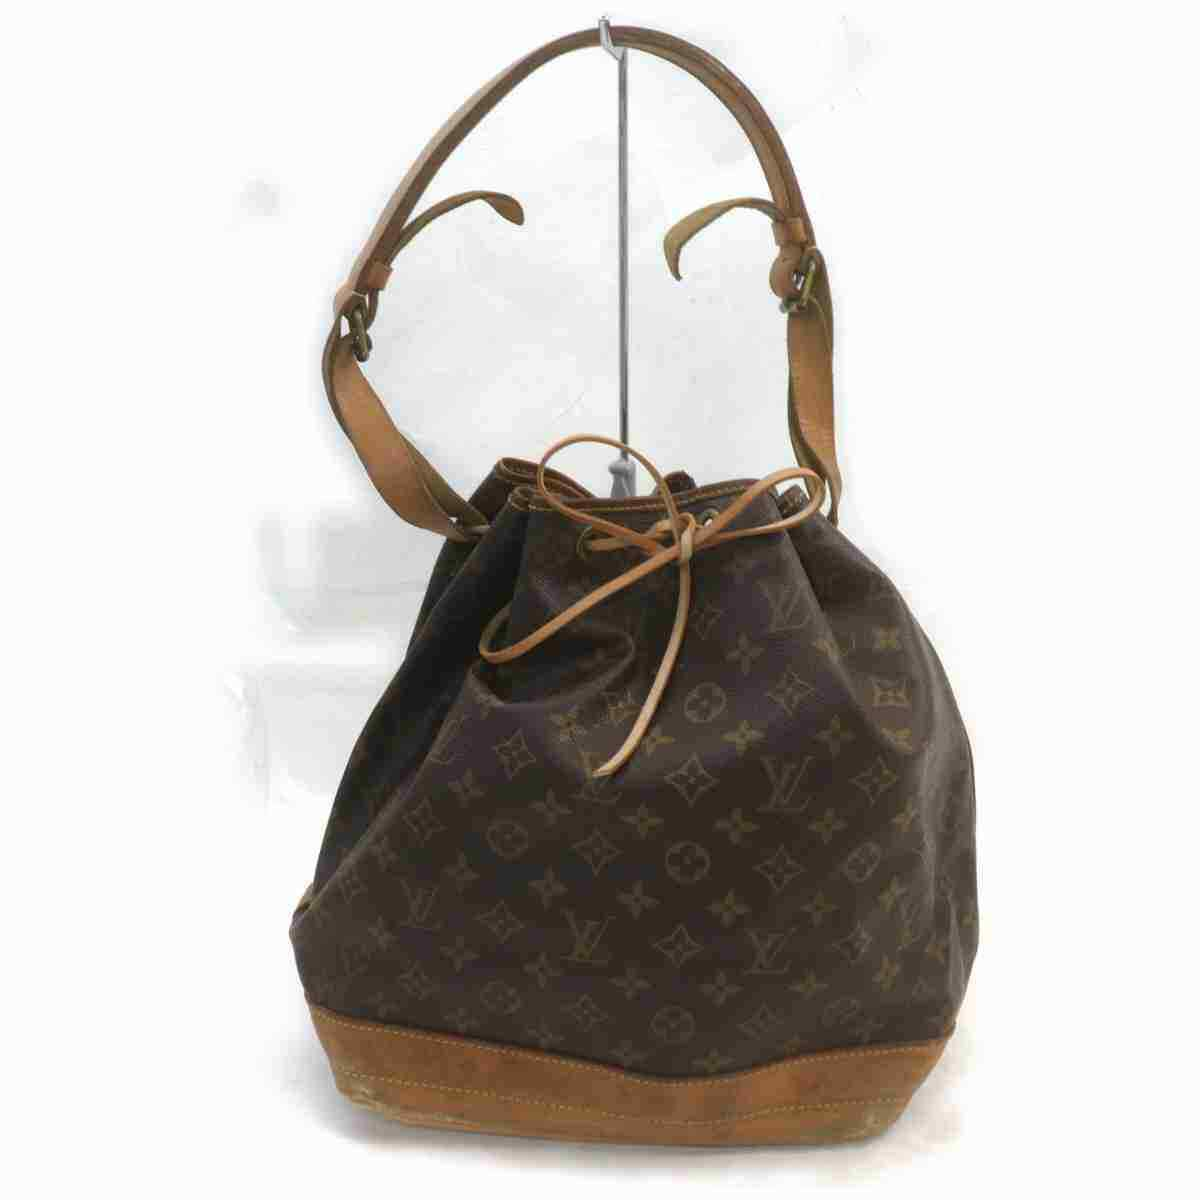 Louis Vuitton Noe M42224 Brown Monogram Shoulder Bag 11459